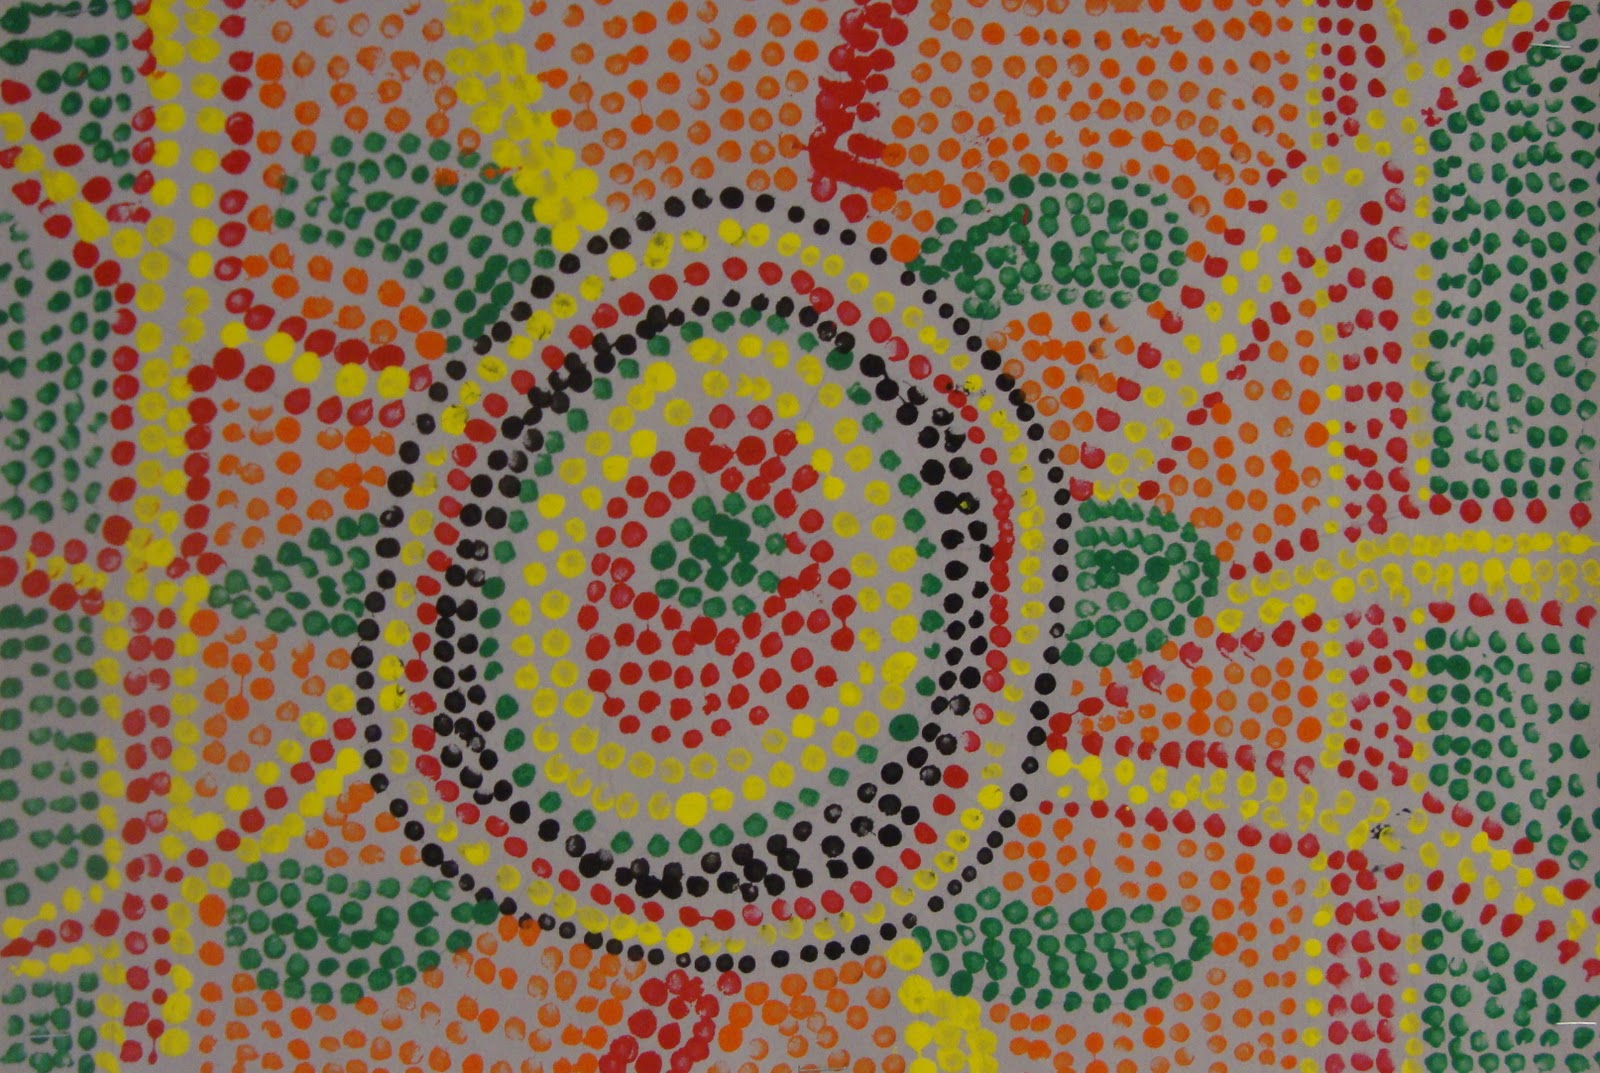 aboriginal essay thesis A central contention of this thesis is that the aboriginal flag is a work of art as   essay 'aboriginal art and film: the politics of representation'.